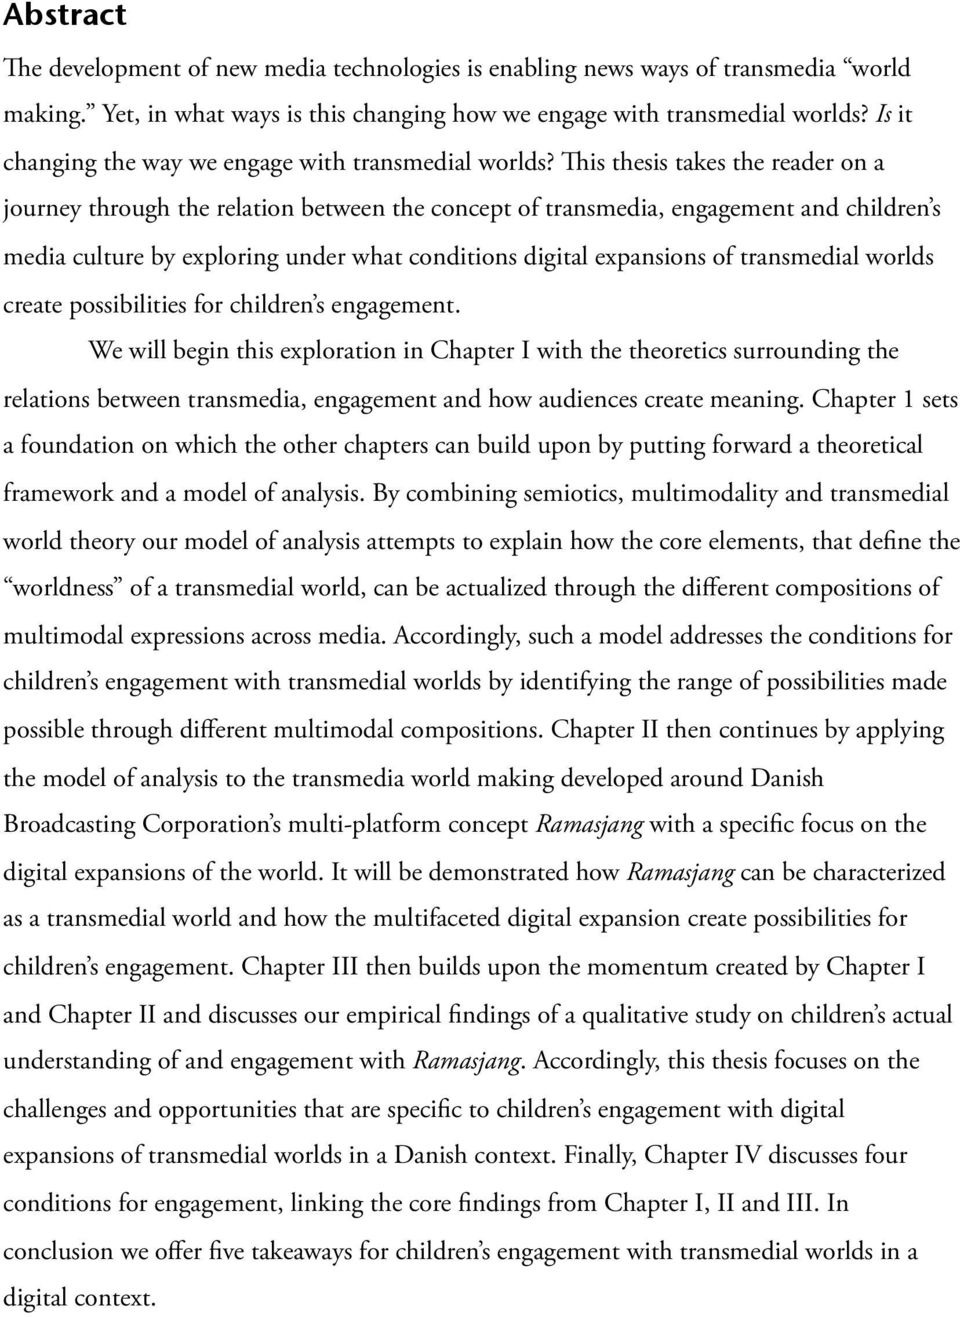 is thesis takes the reader on a journey through the relation between the concept of transmedia, engagement and children s media culture by exploring under what conditions digital expansions of